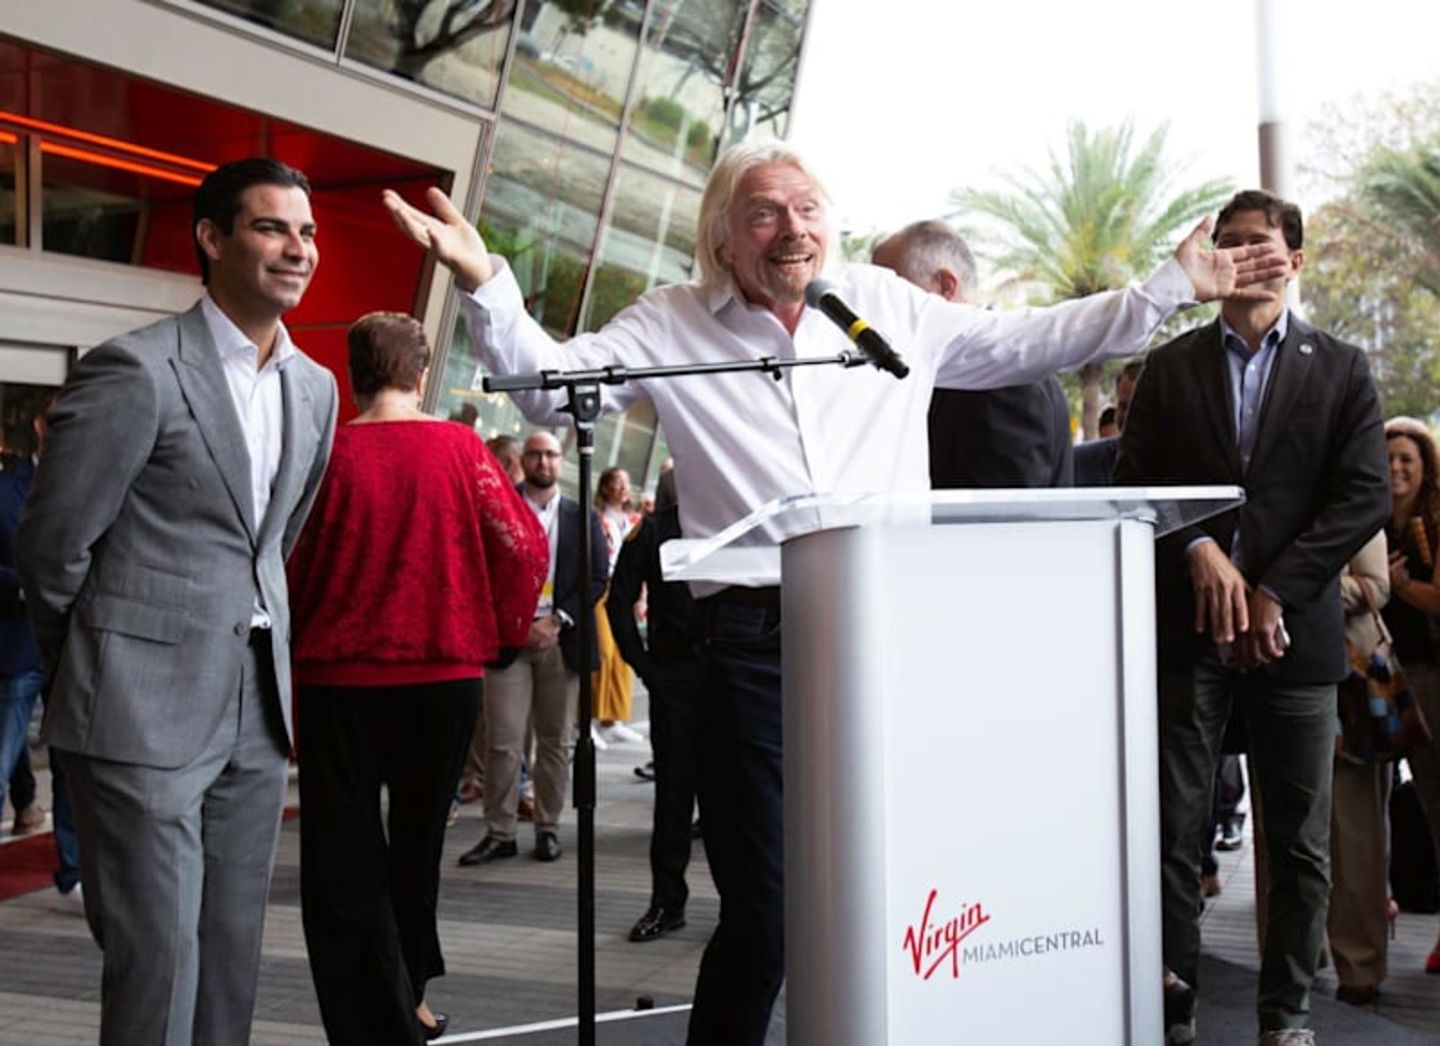 Richard Branson speaks at a podium for the launch of Virgin MiamiCentral